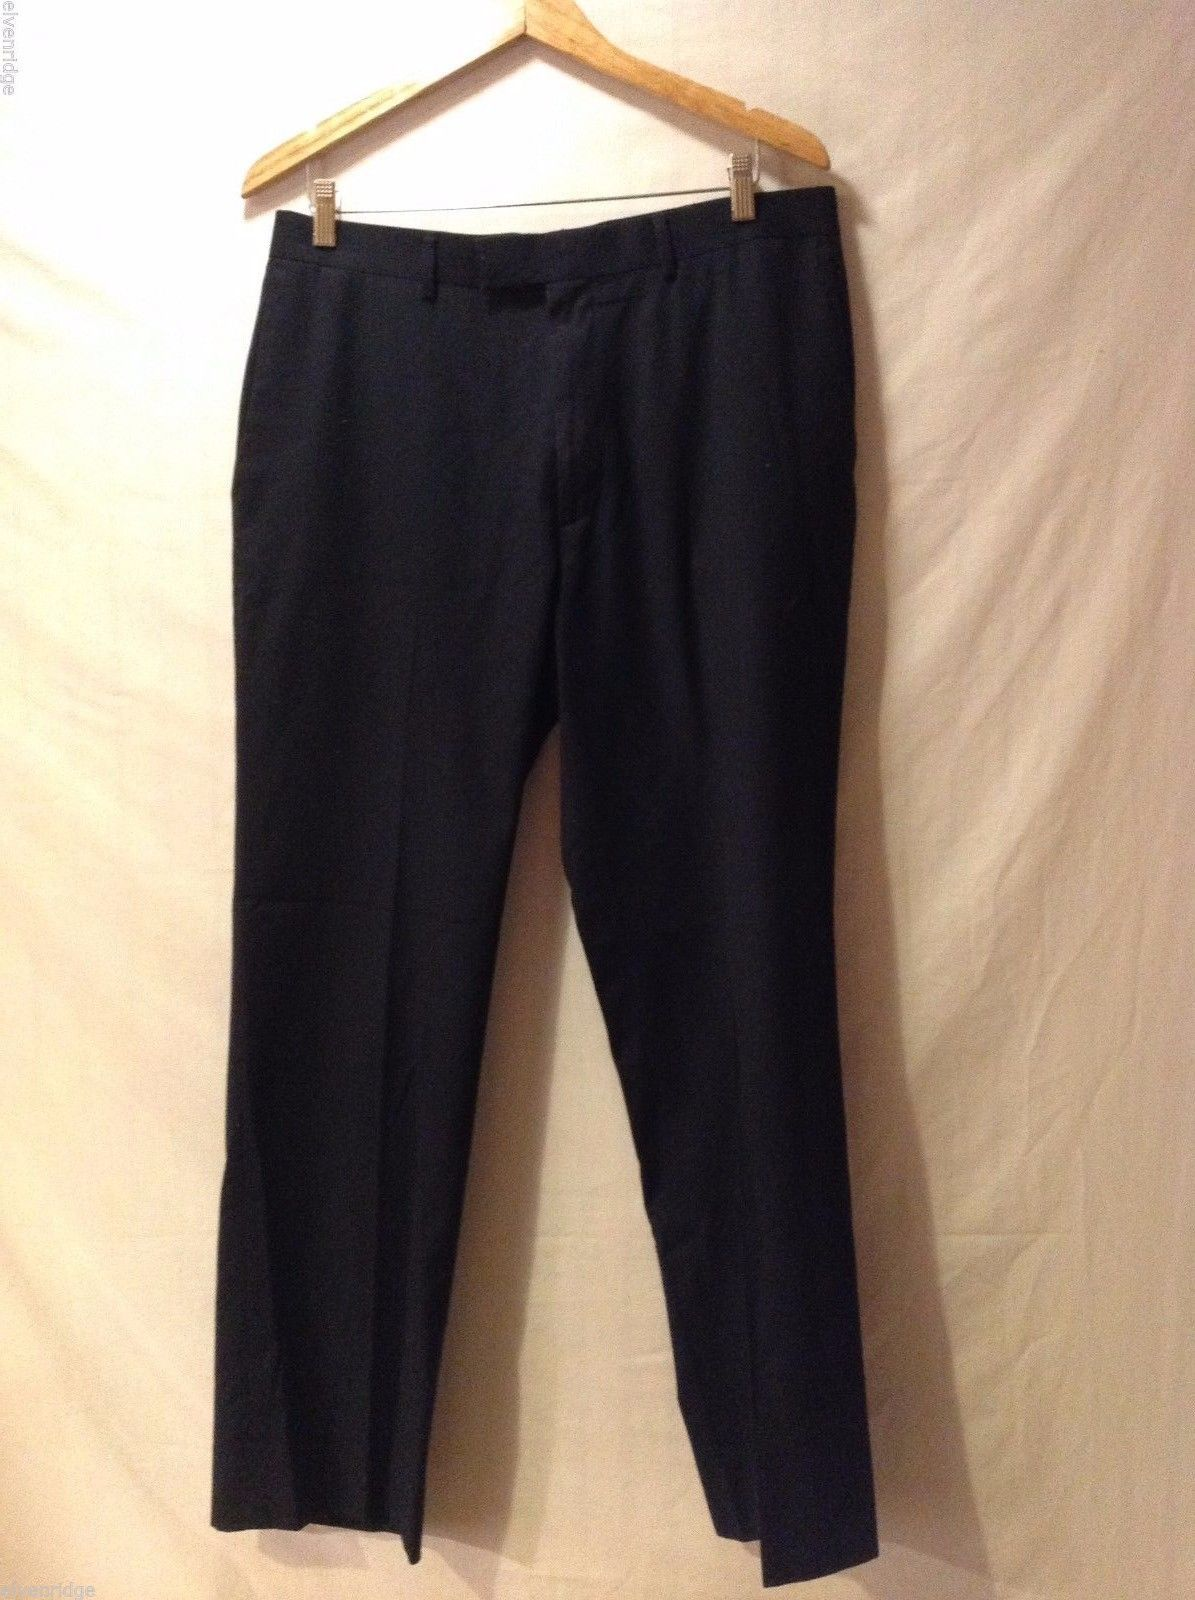 Perry Ellis Mens Black Dress Pants Size 34 32